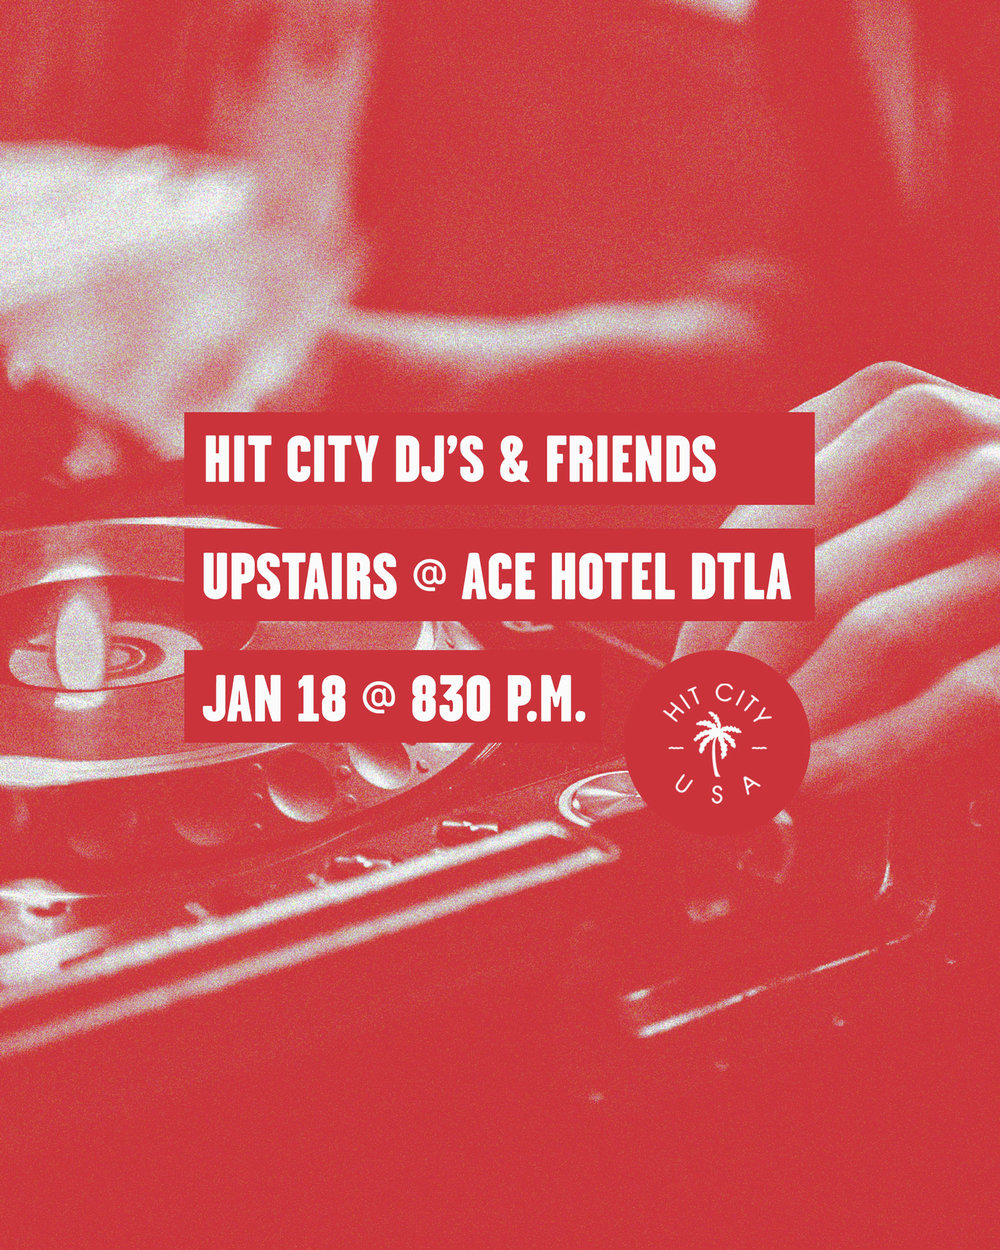 Hit Cit DJ's & Friends Upstairs at Ace Hotel DTLA